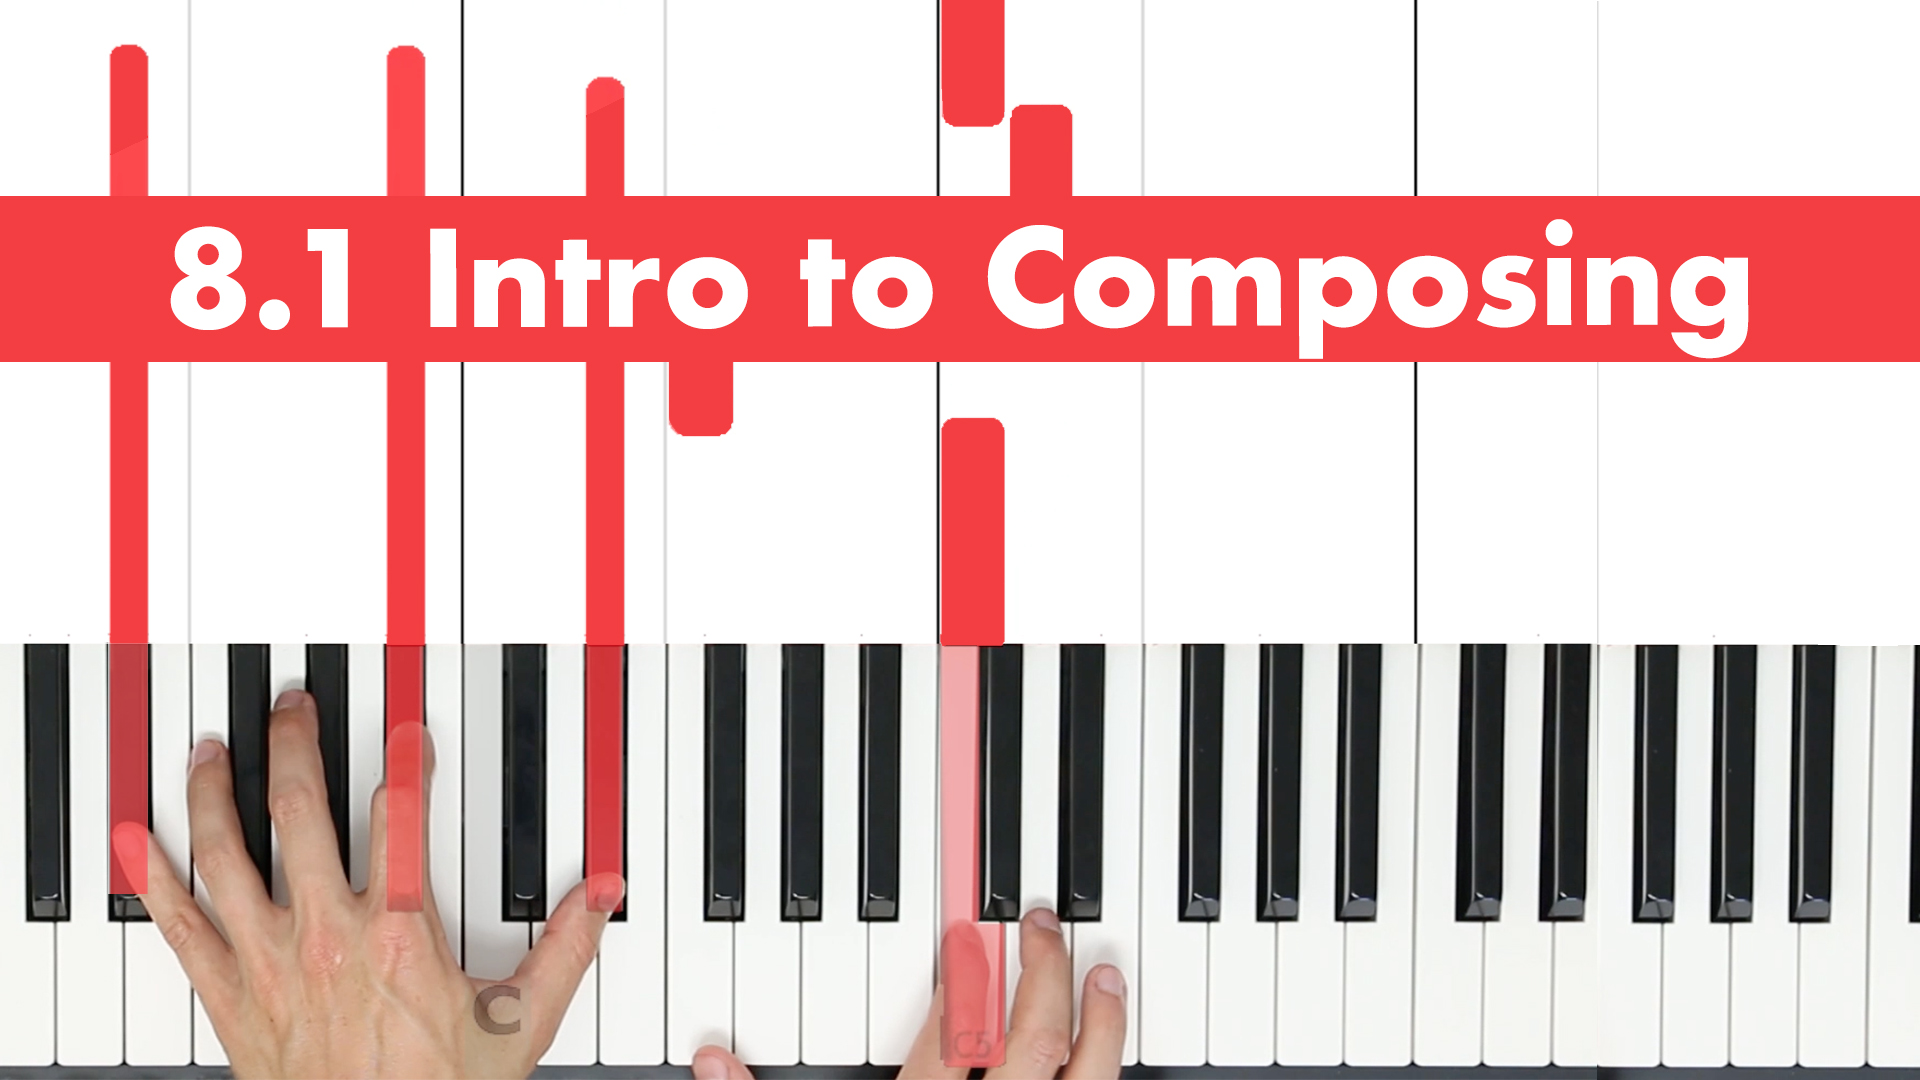 8.1 Intro to Composing